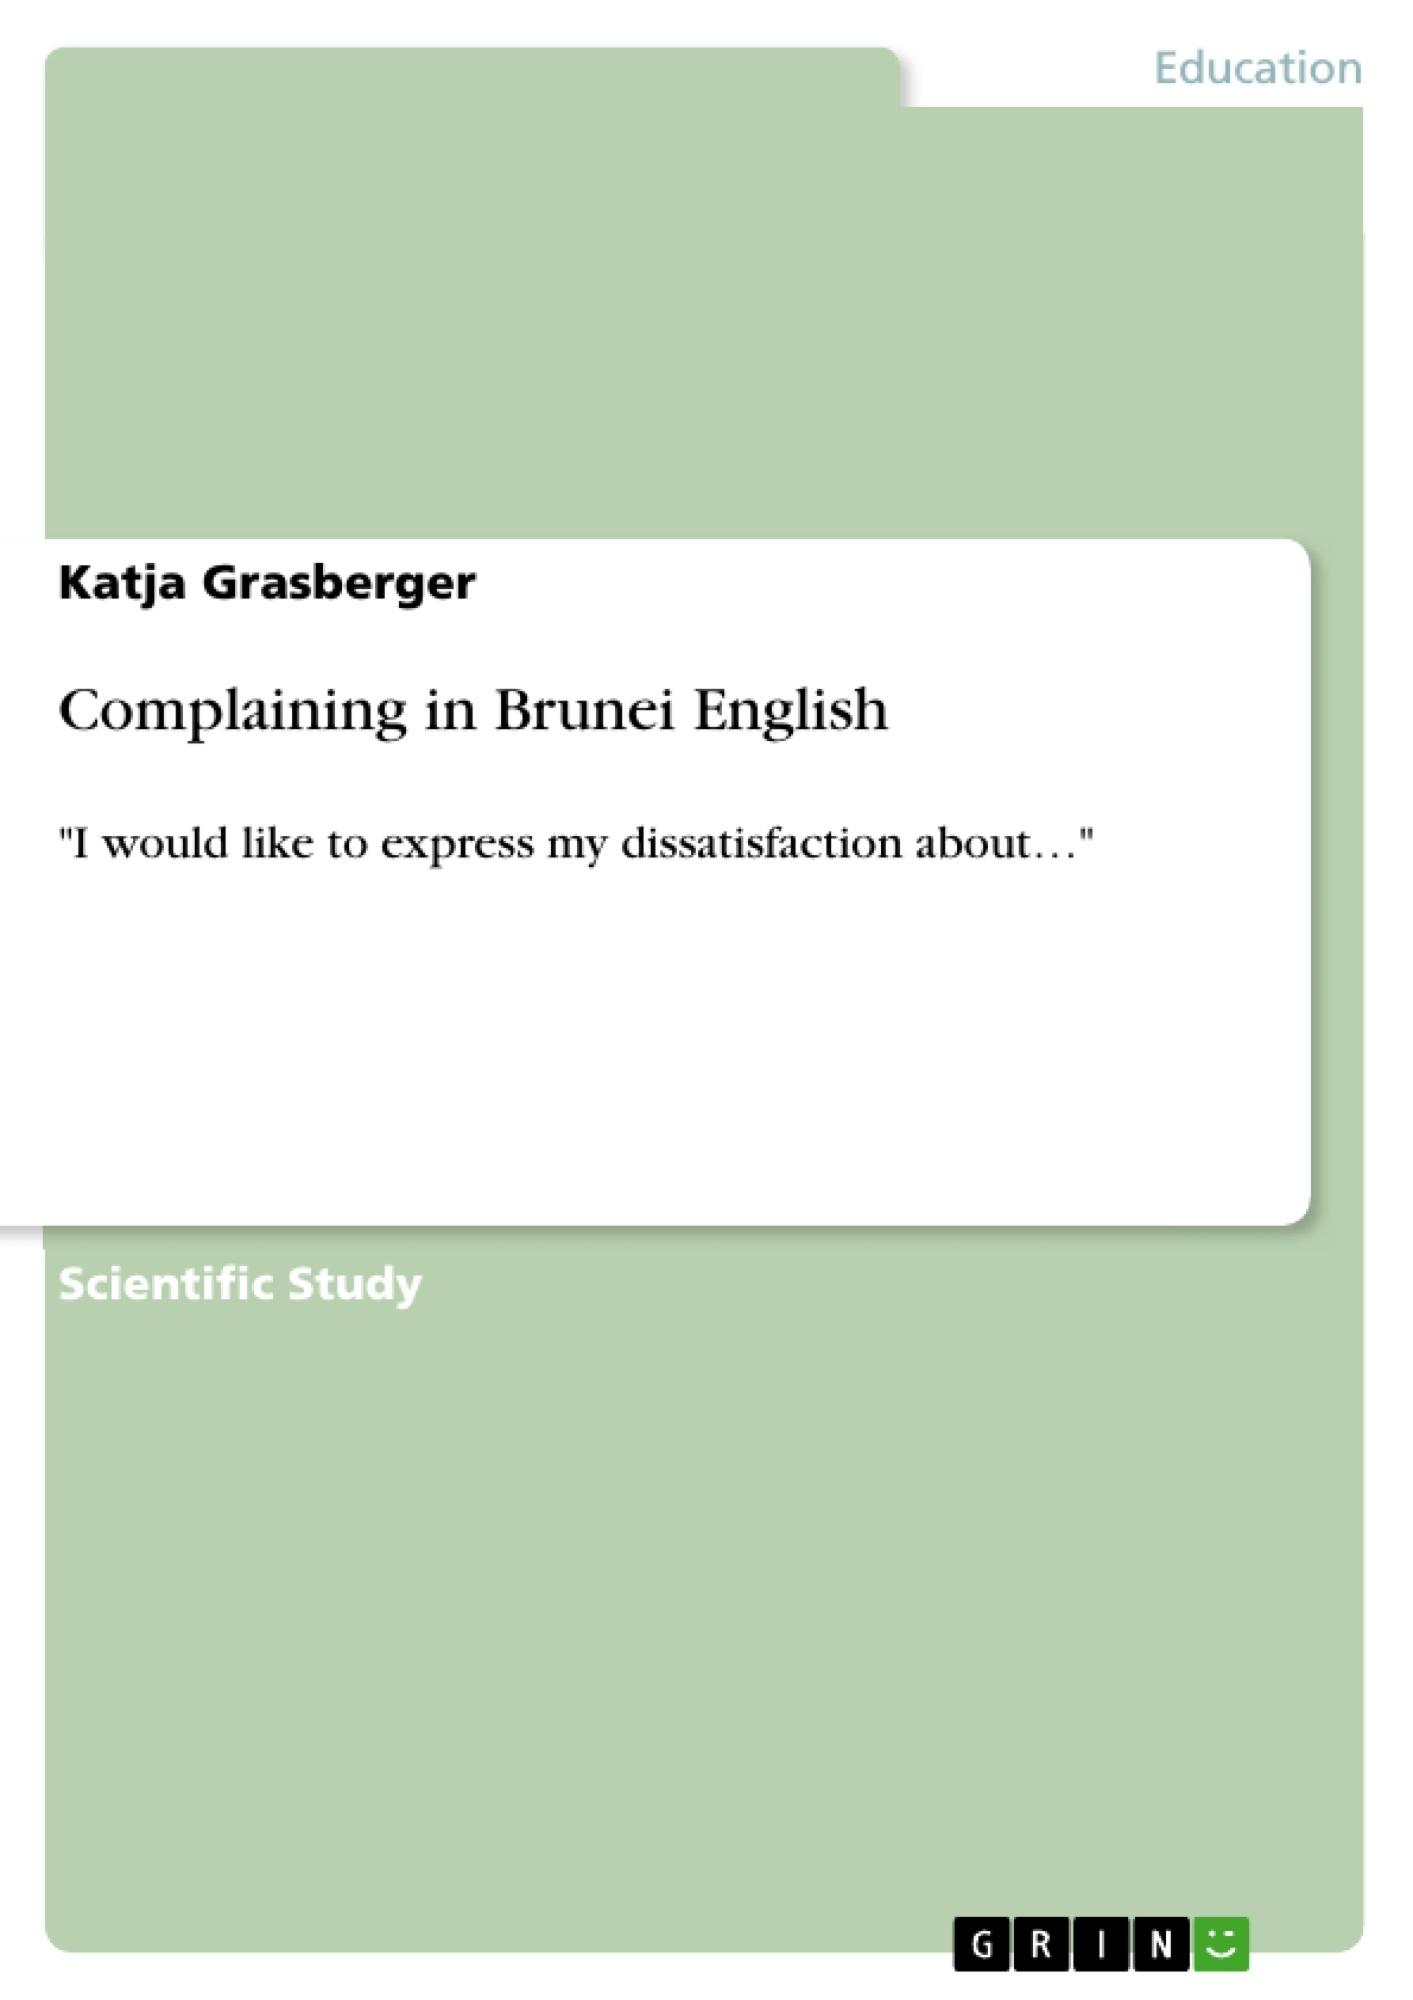 Title: Complaining in Brunei English